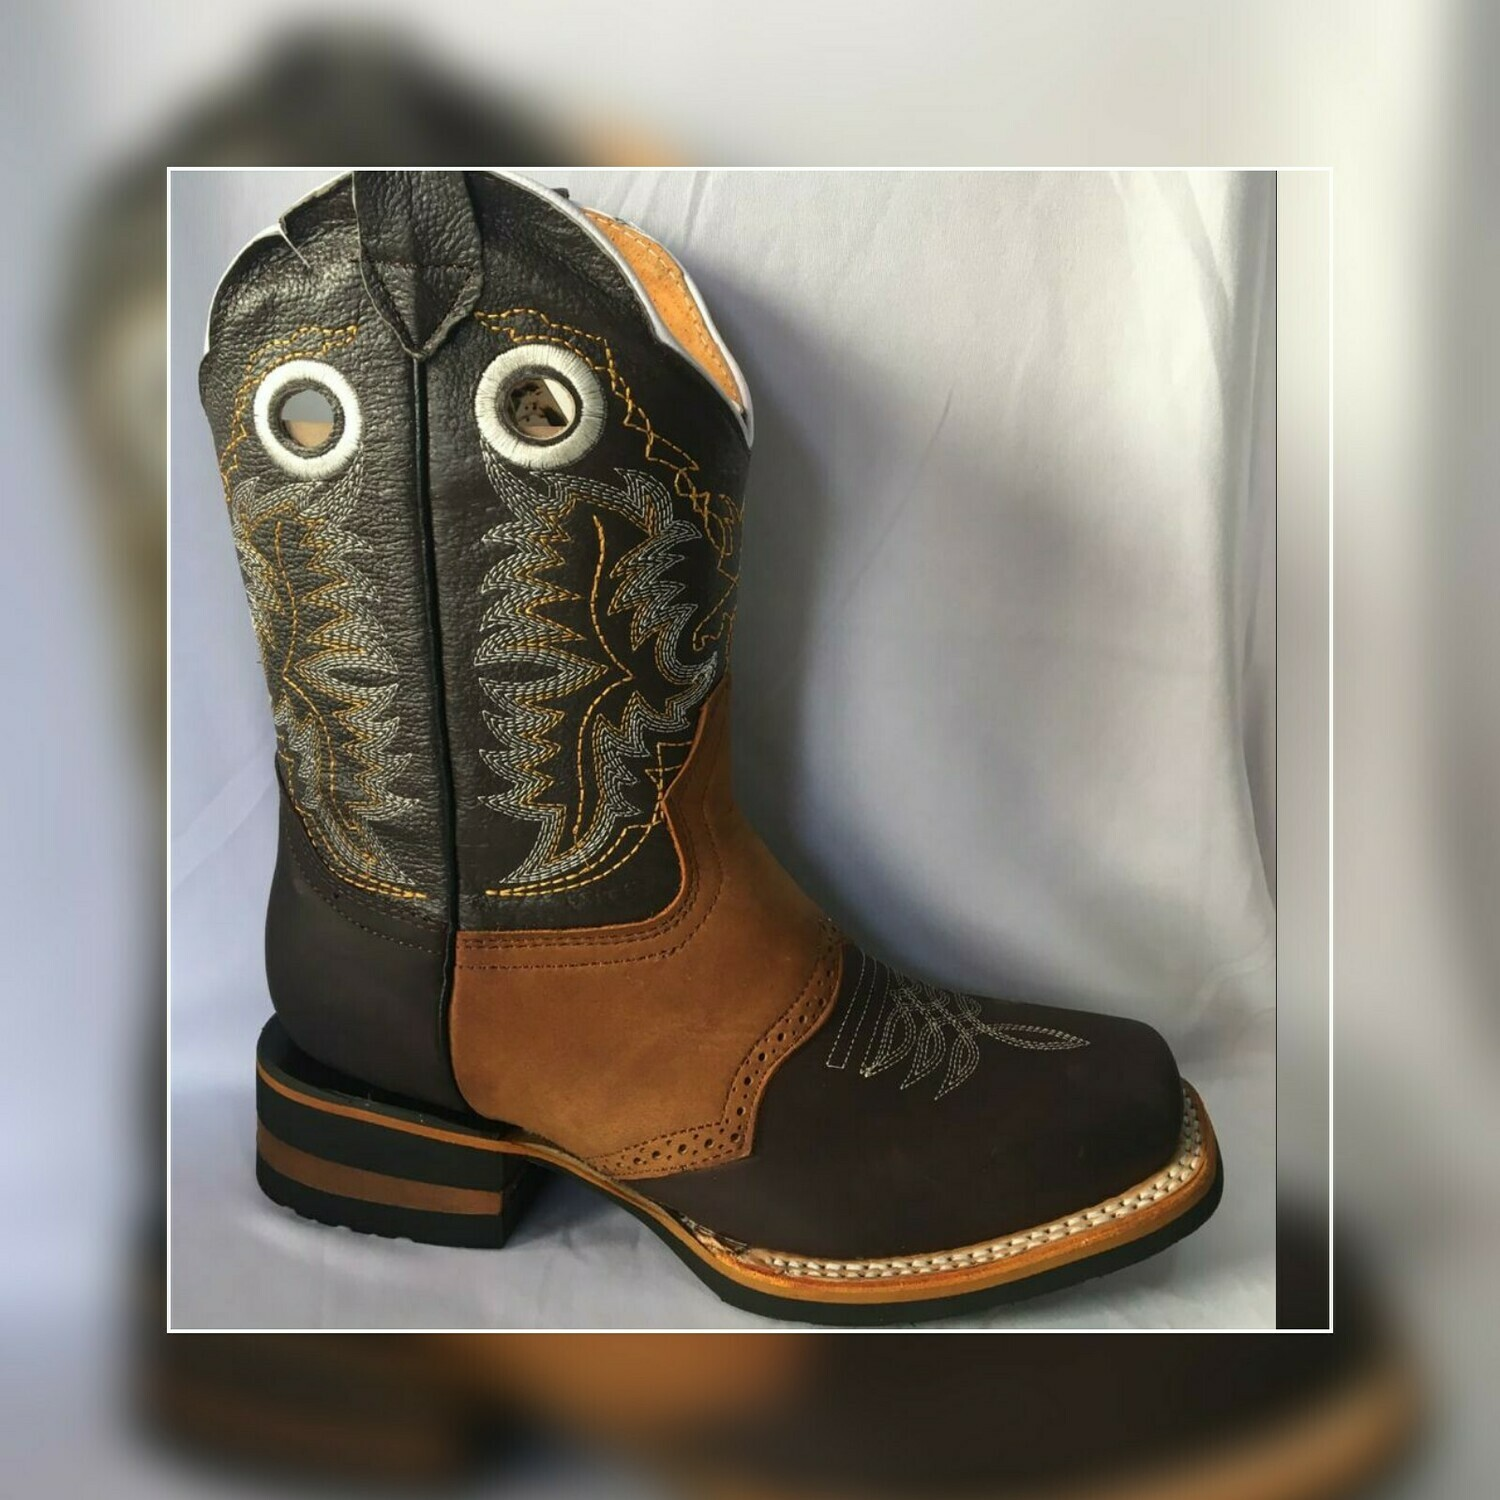 Bota Rodeo Old corral suela hule